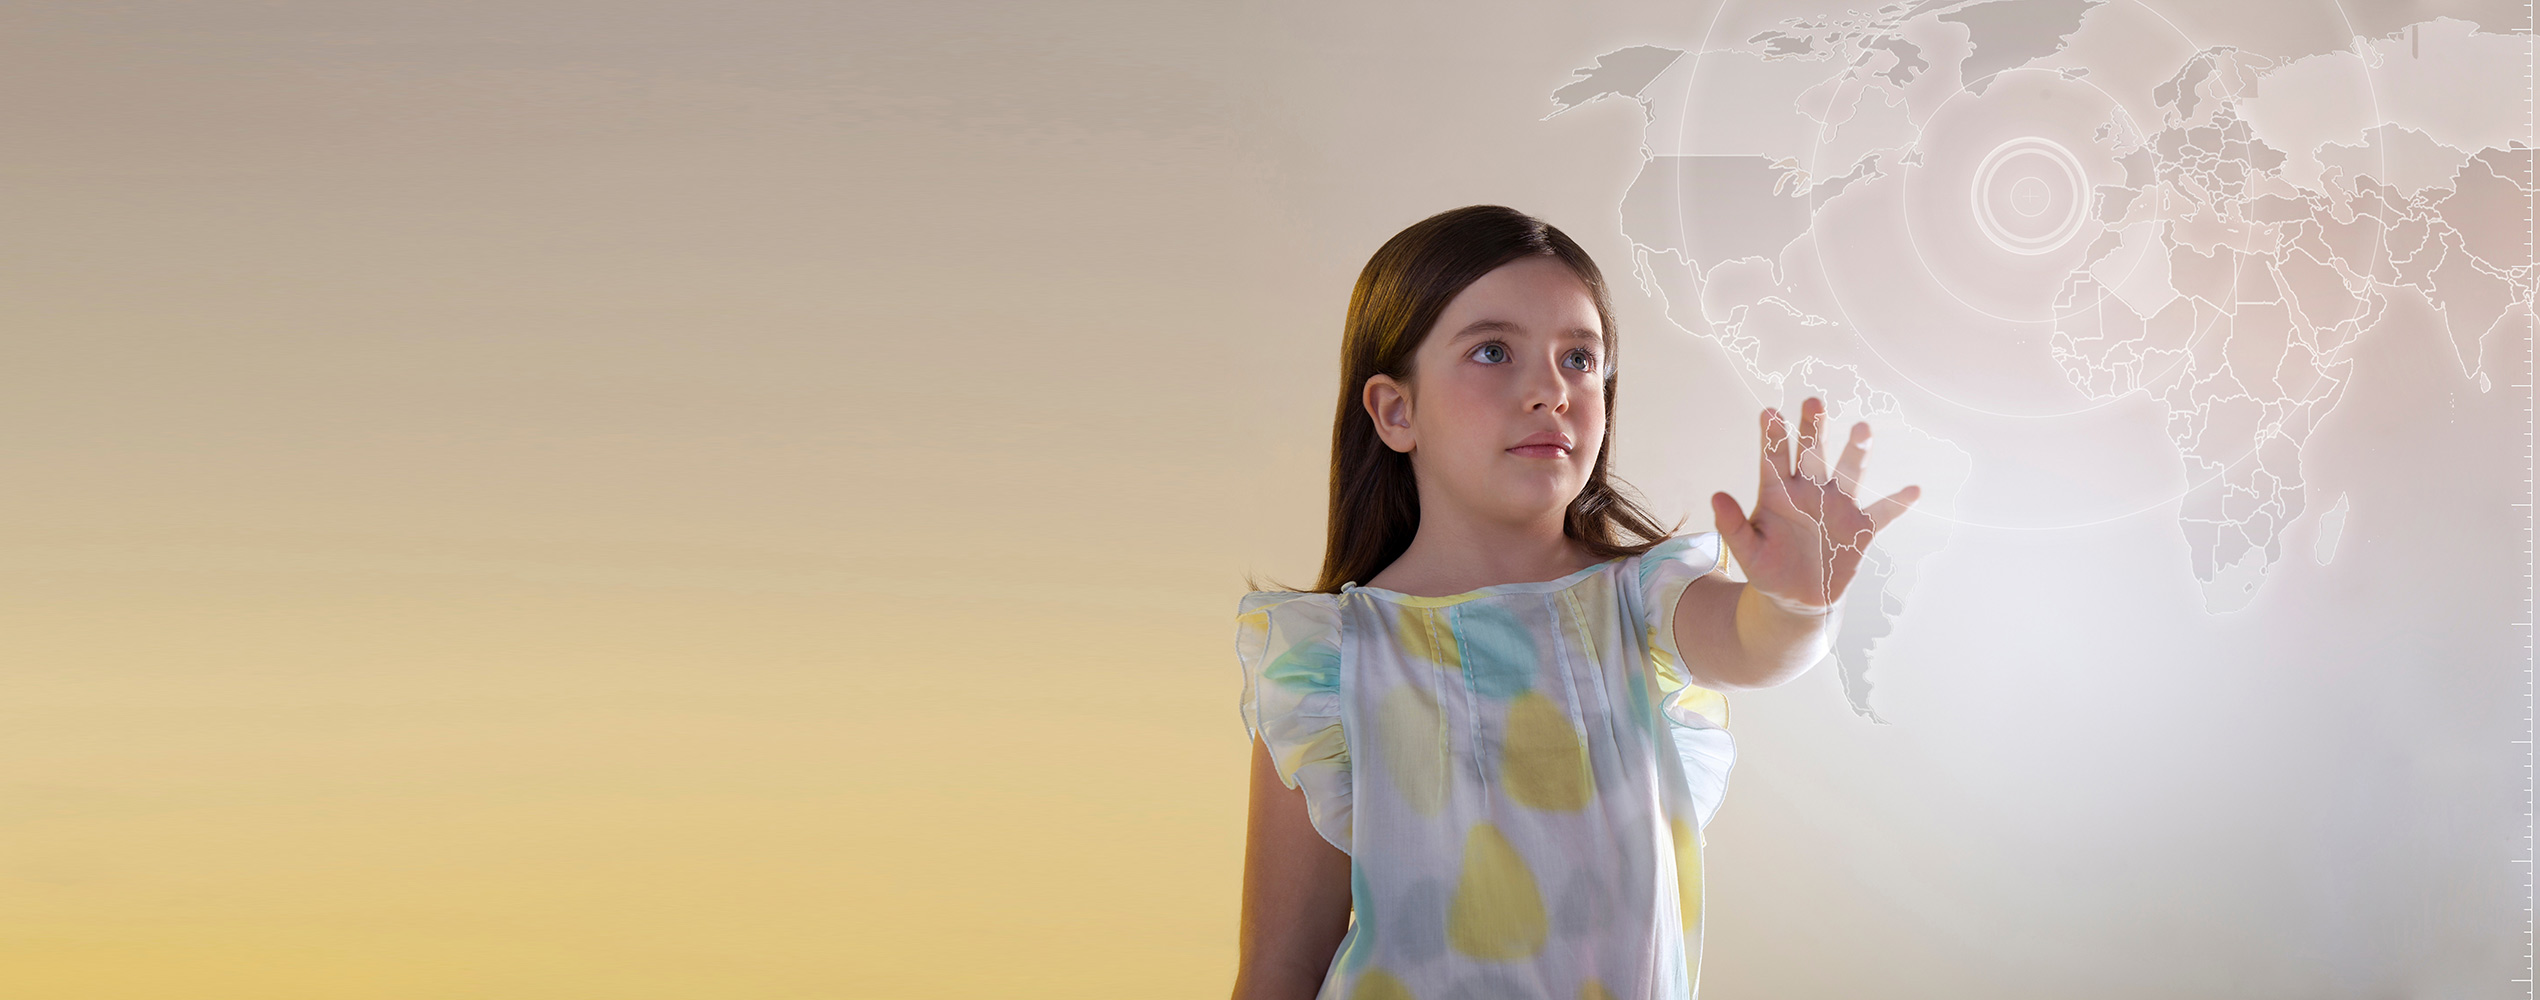 Girl-touching-virtual-world-map-Getty-Images-Image-Source-2540x1000-Header